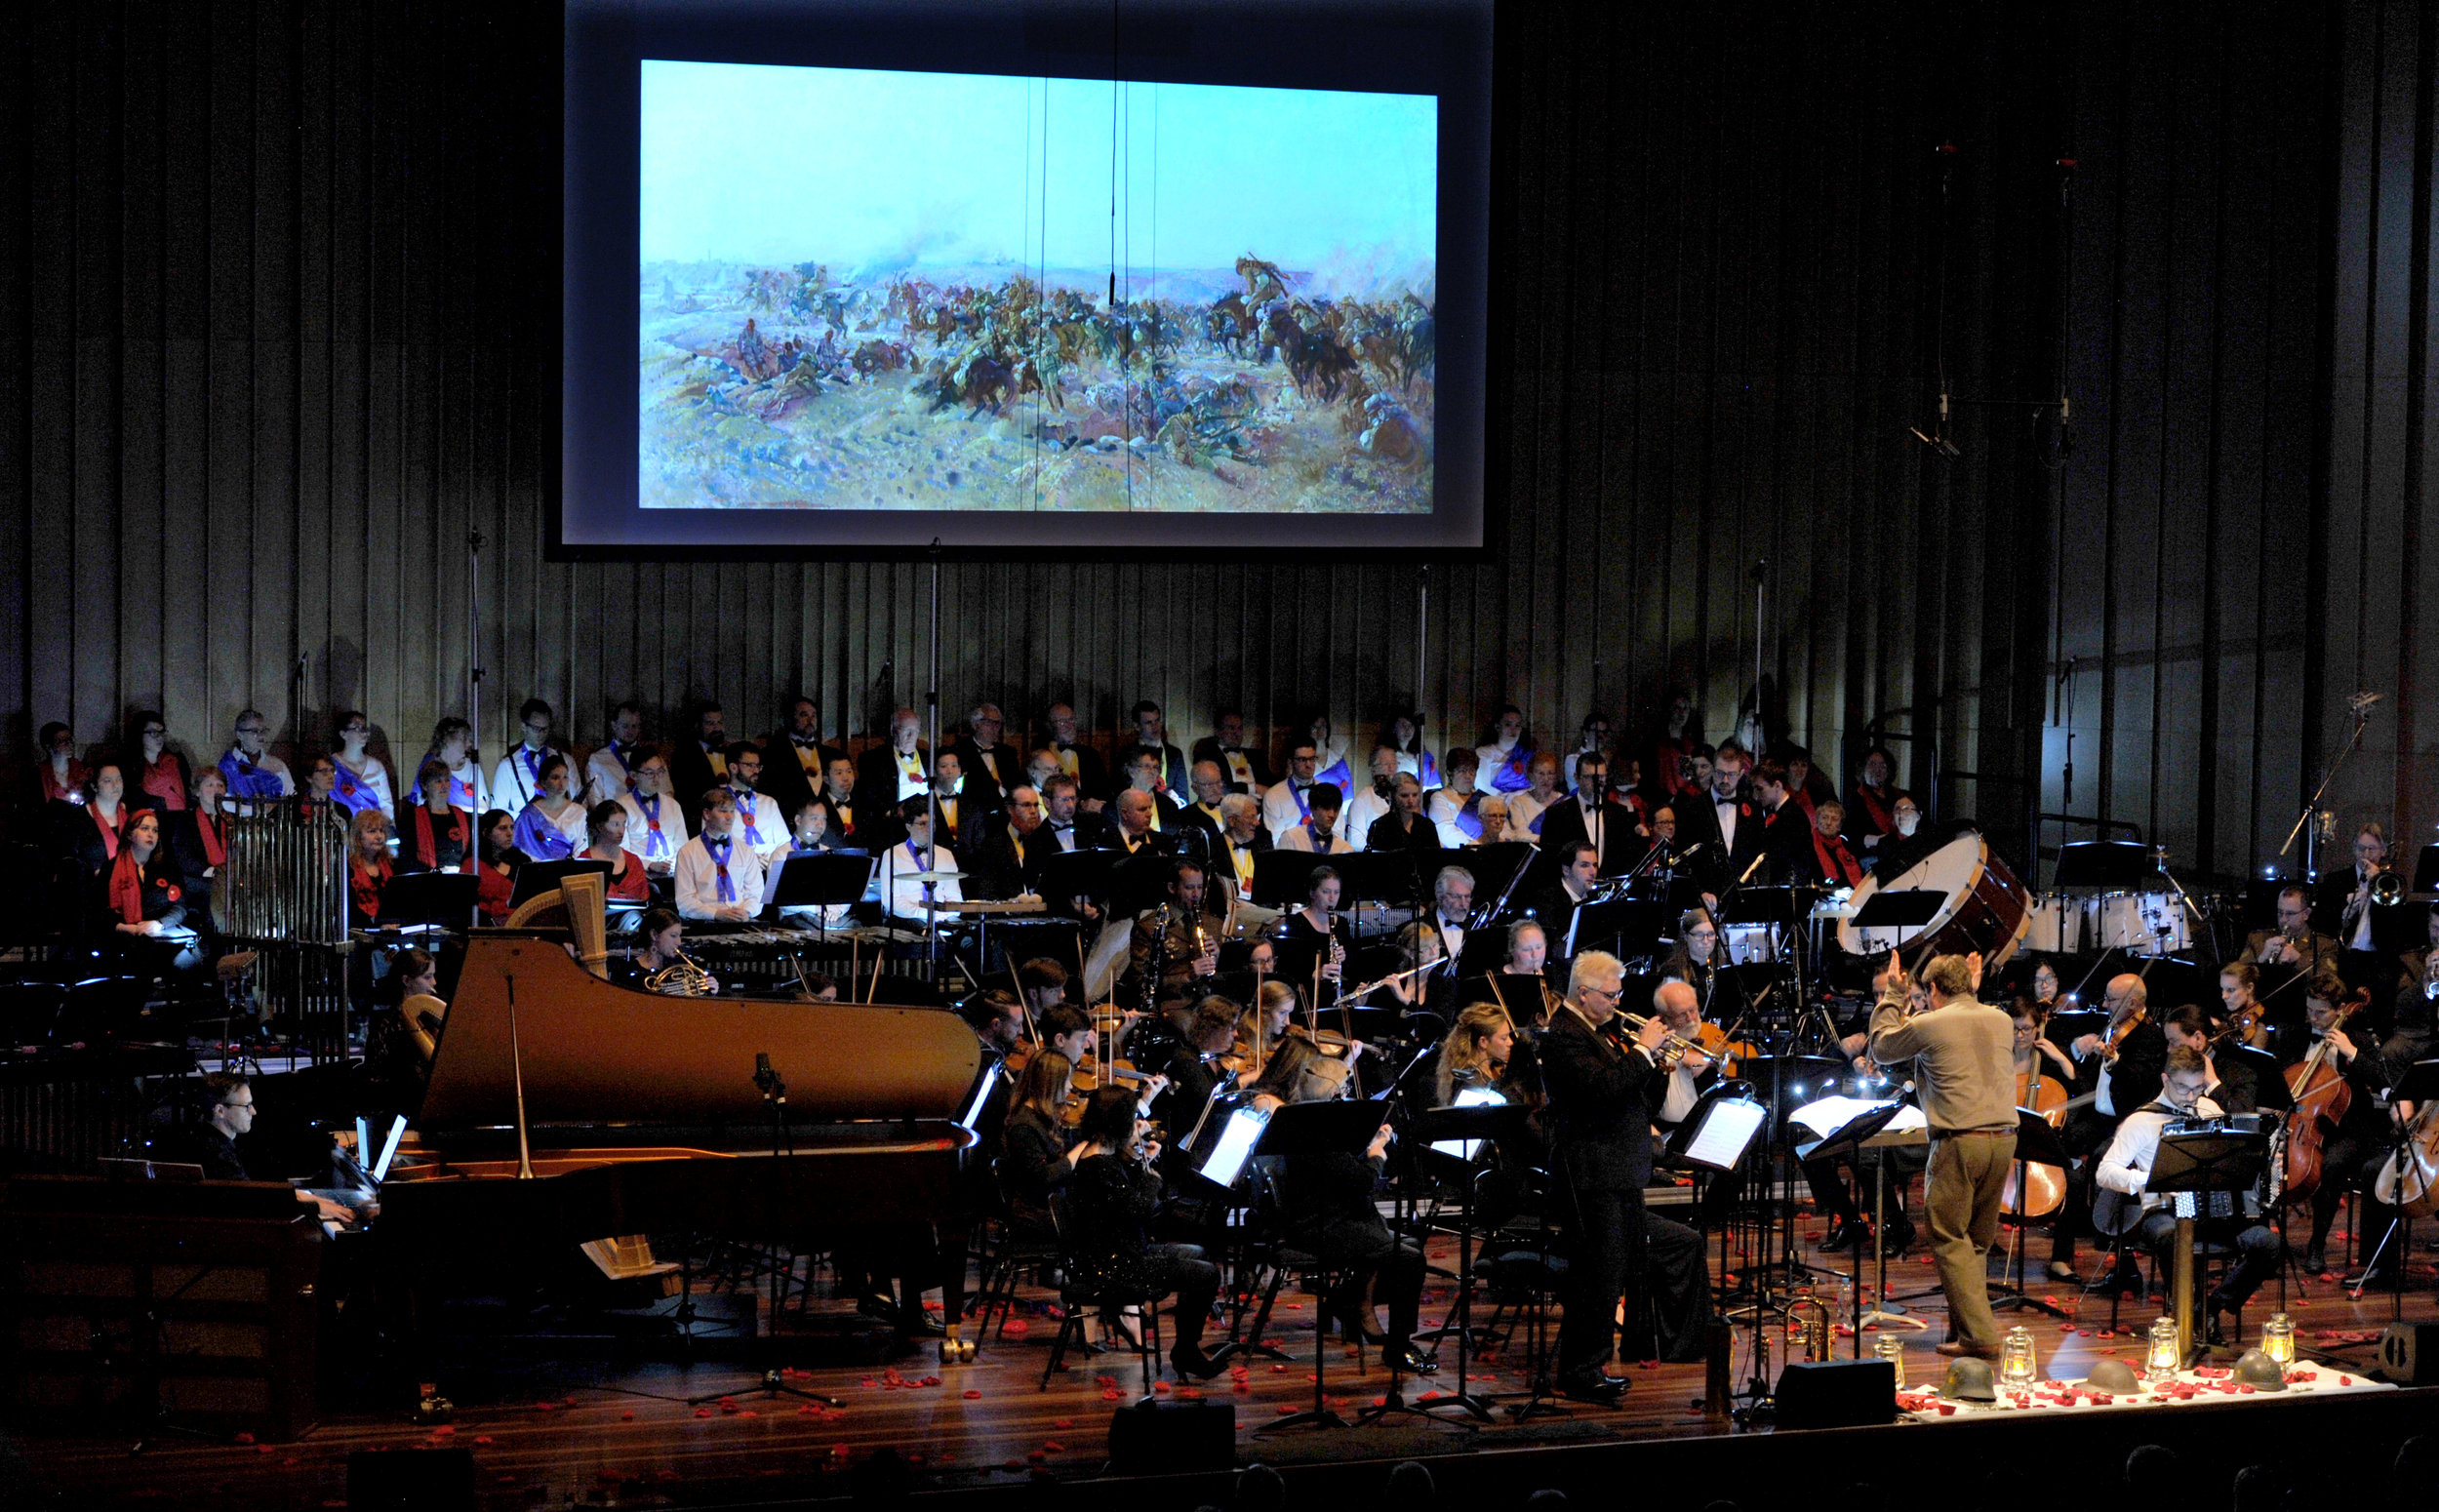 The Diggers Requiem premieres in Canberra October 6 2018